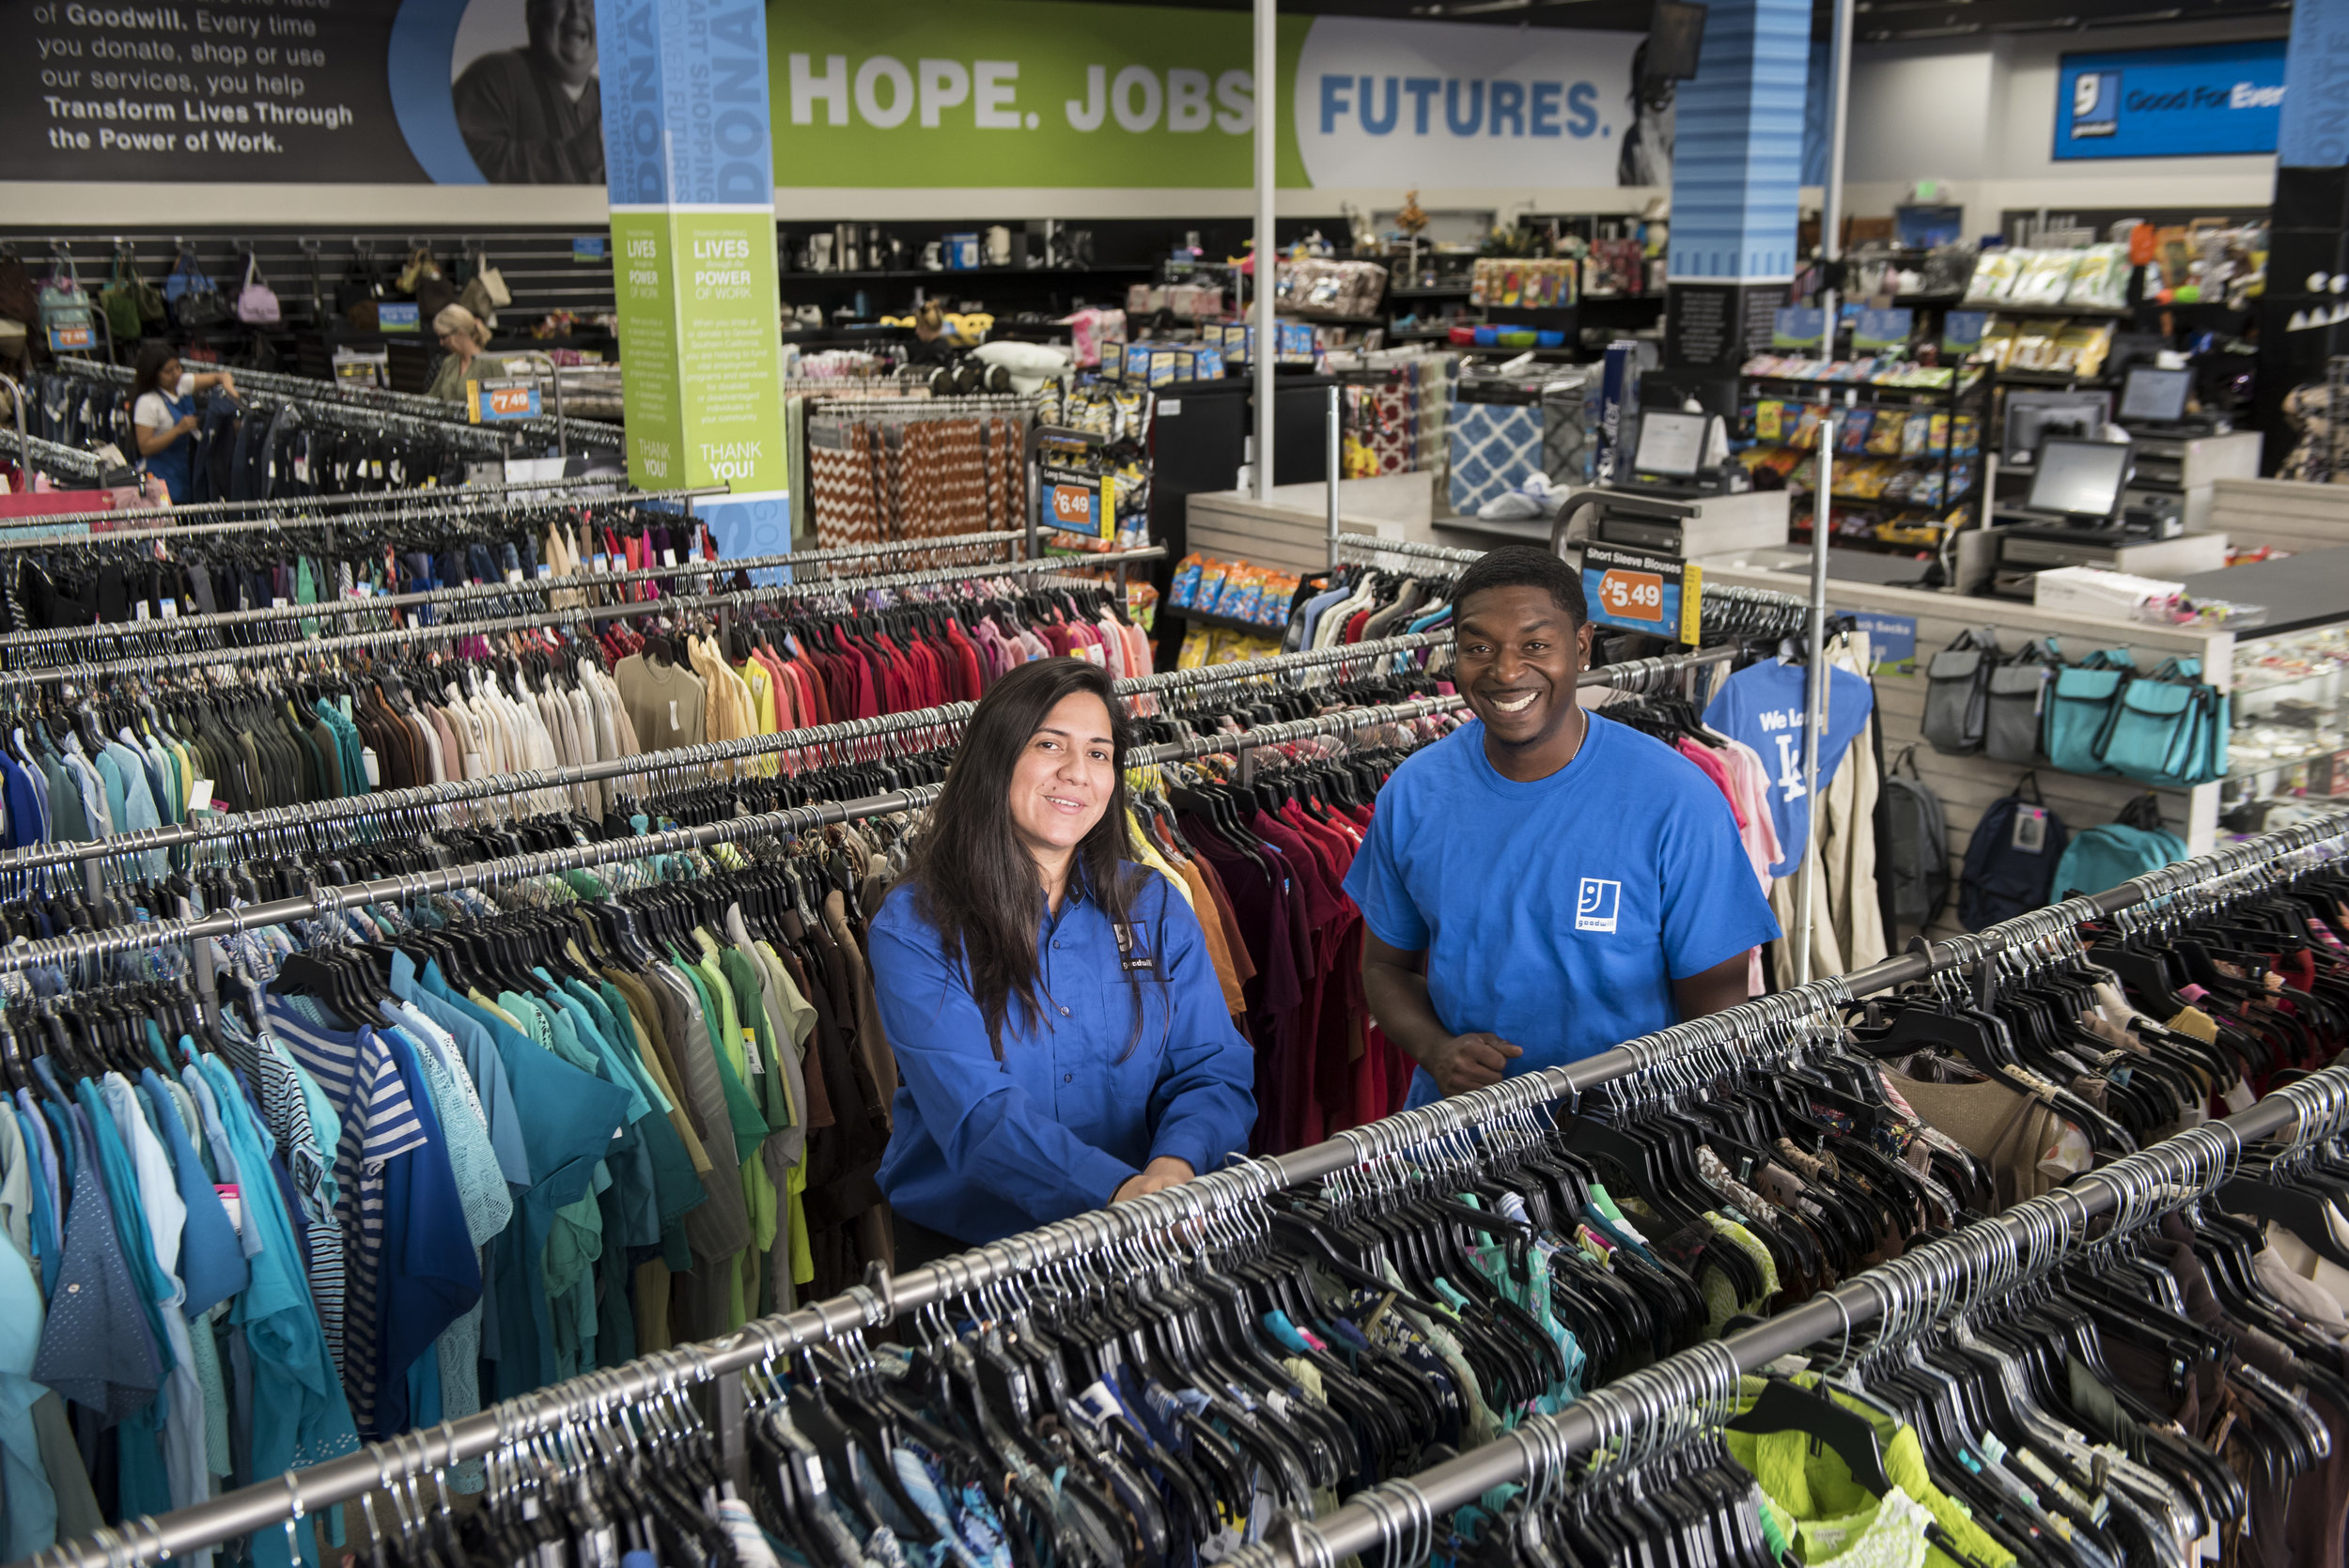 Goodwill Retail workers goodstock.jpg